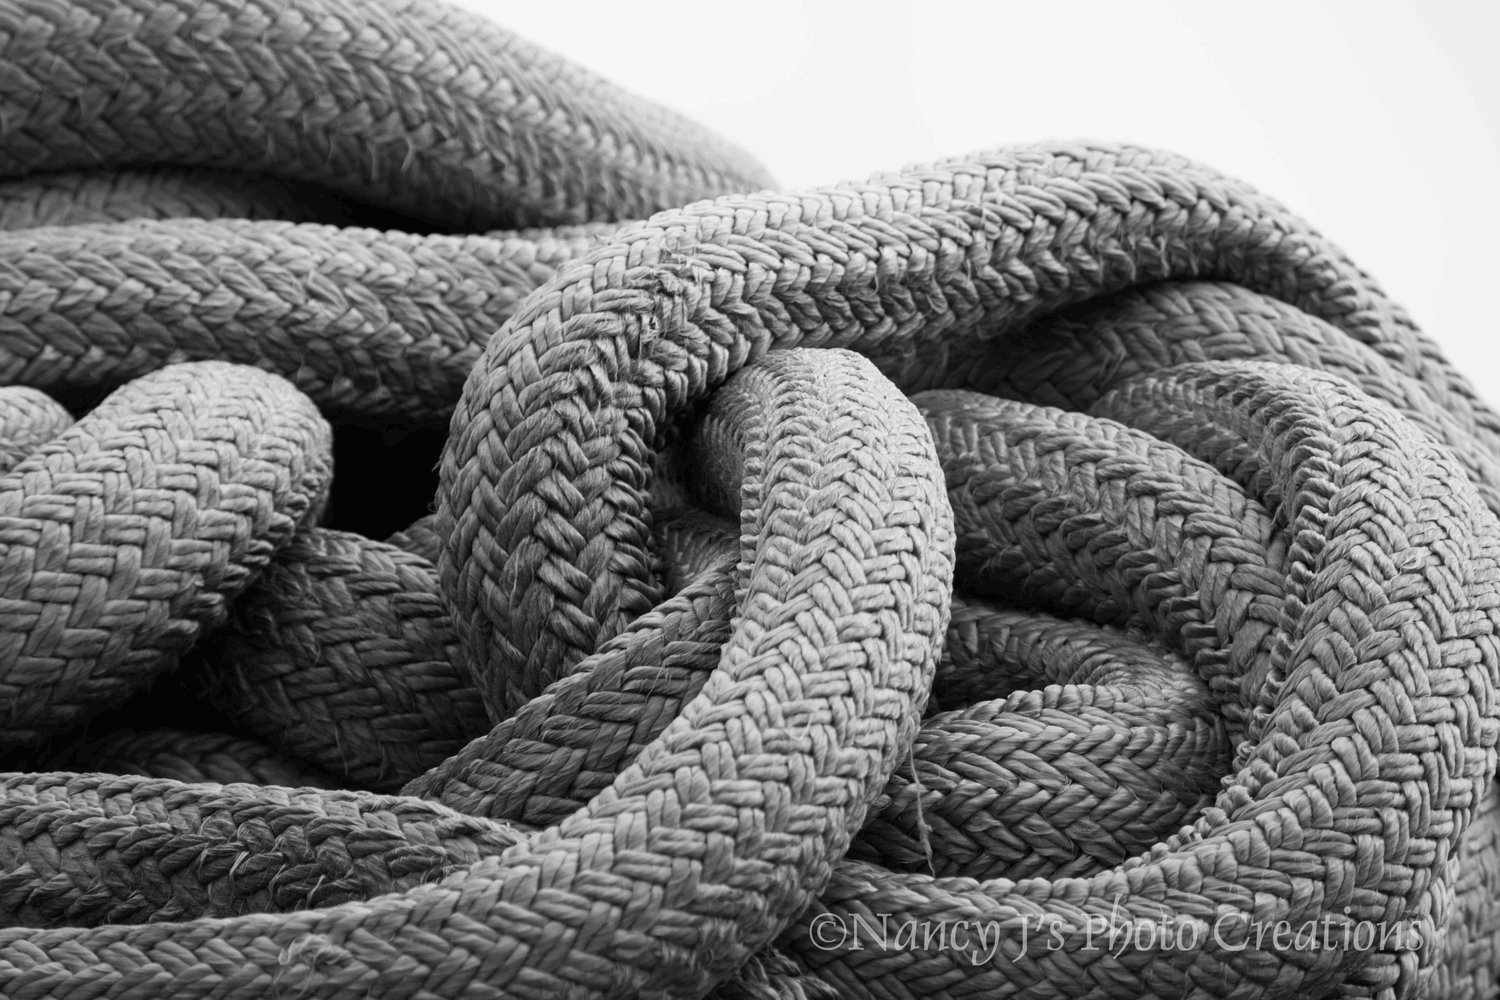 Grey coiled rope photographic print oversized nautical wall decor unframed black white photography rustic art boating gift for him 5x7 8x10 8x12 11x14